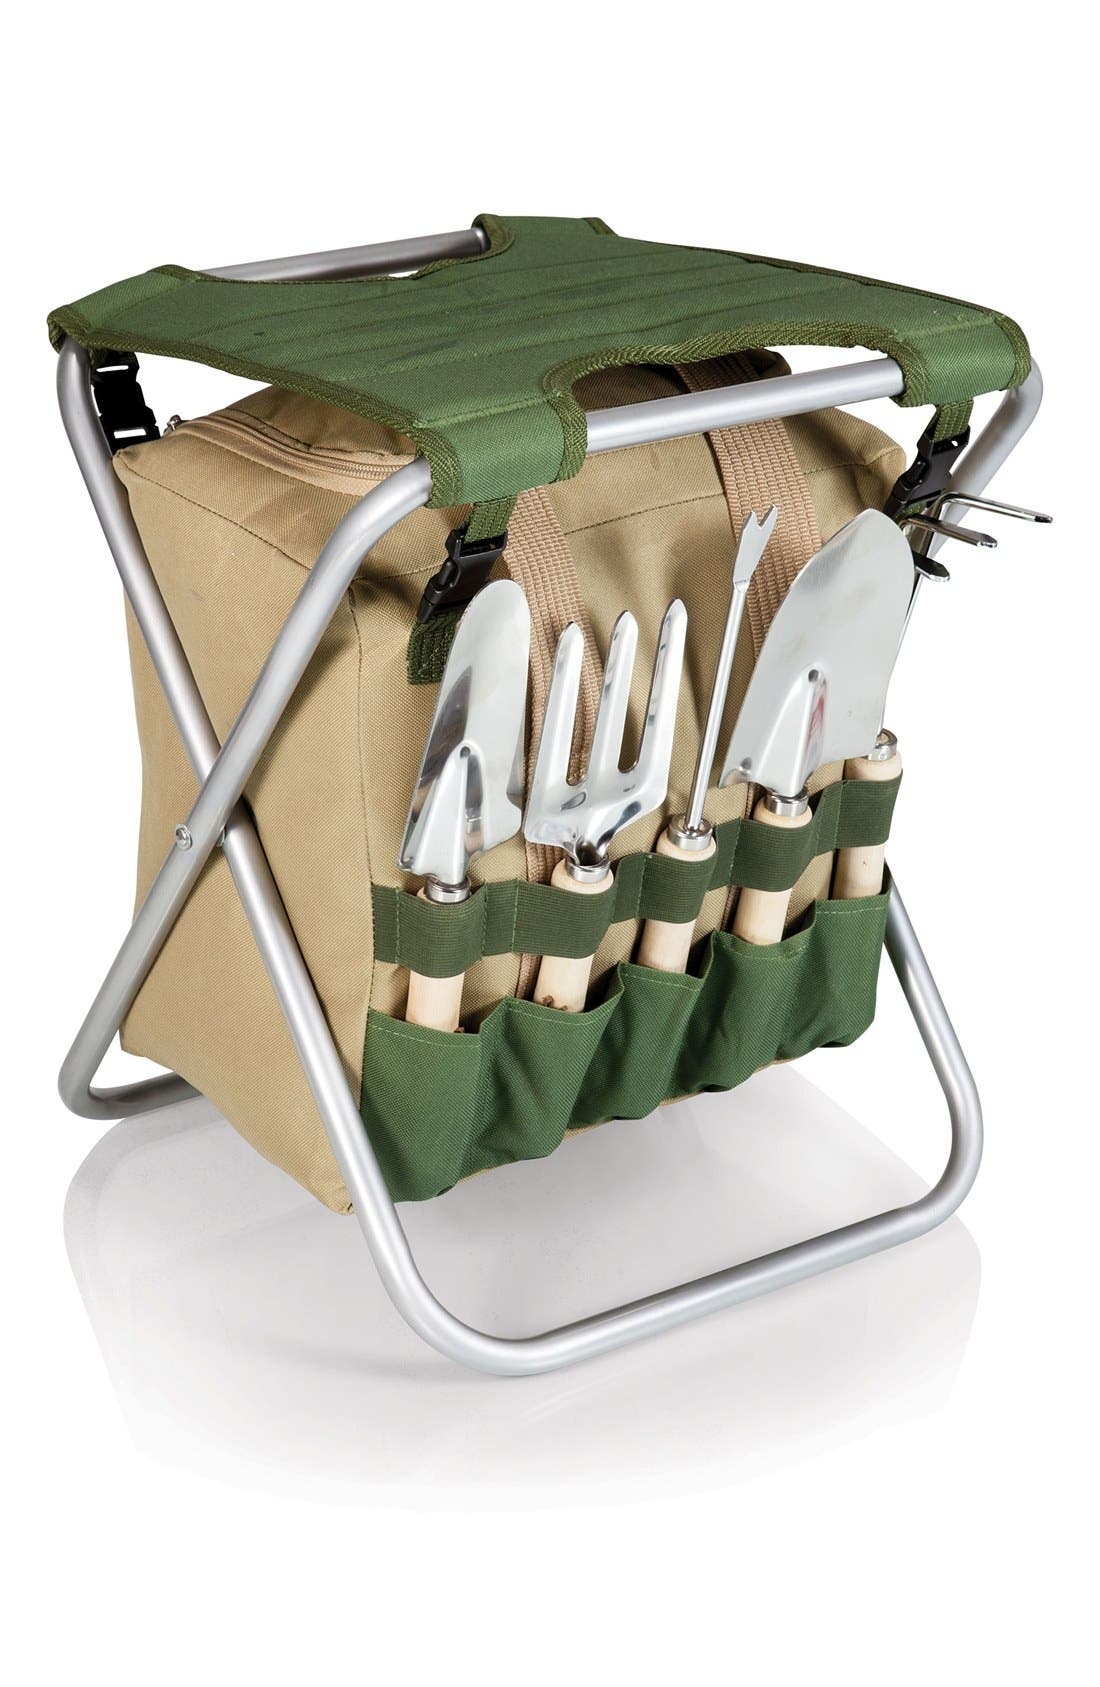 Gardener Seat & Tools,                             Main thumbnail 1, color,                             Green